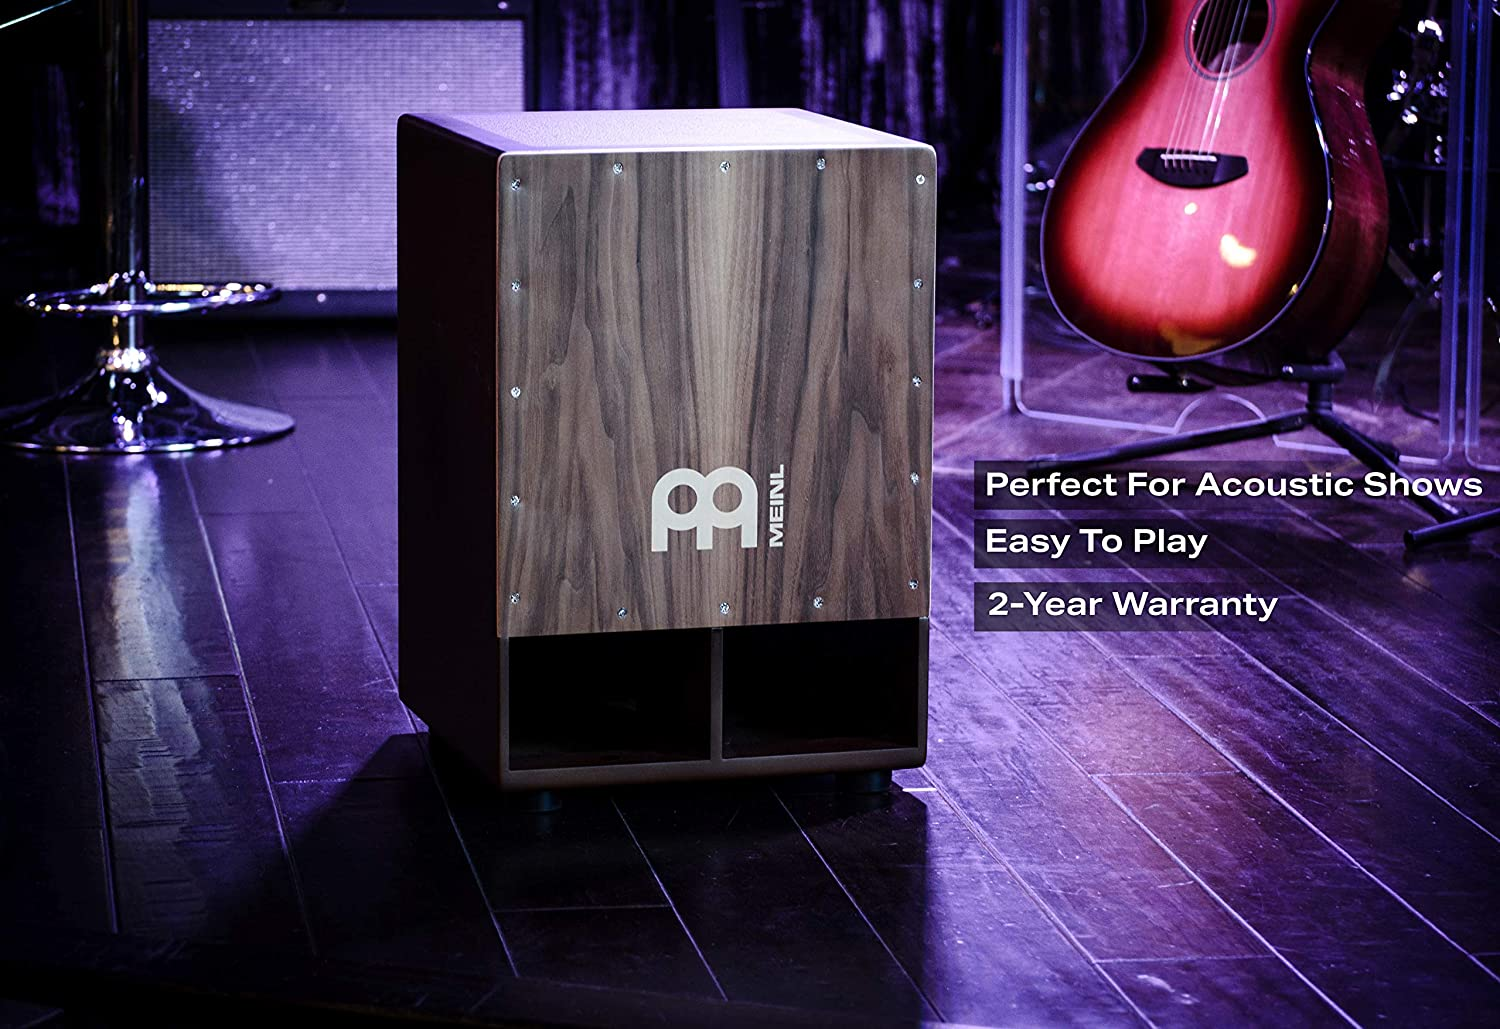 SUBCAJ5WN Meinl Jumbo Bass Subwoofer Cajon with Internal Snares Walnut Playing Surface 2-YEAR WARRANTY NOT MADE IN CHINA